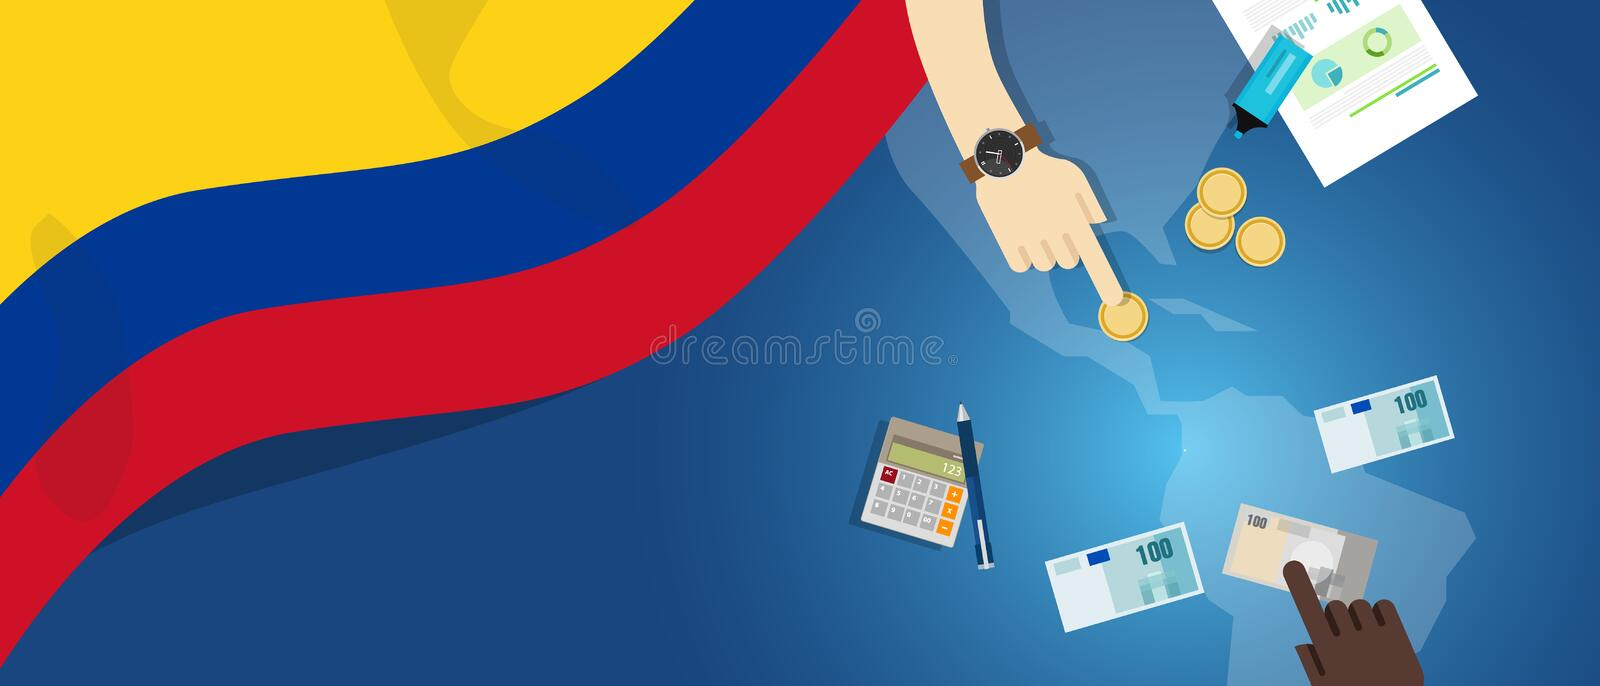 Colombia economy fiscal money trade concept illustration of financial banking budget with flag map and currency. Vector royalty free illustration